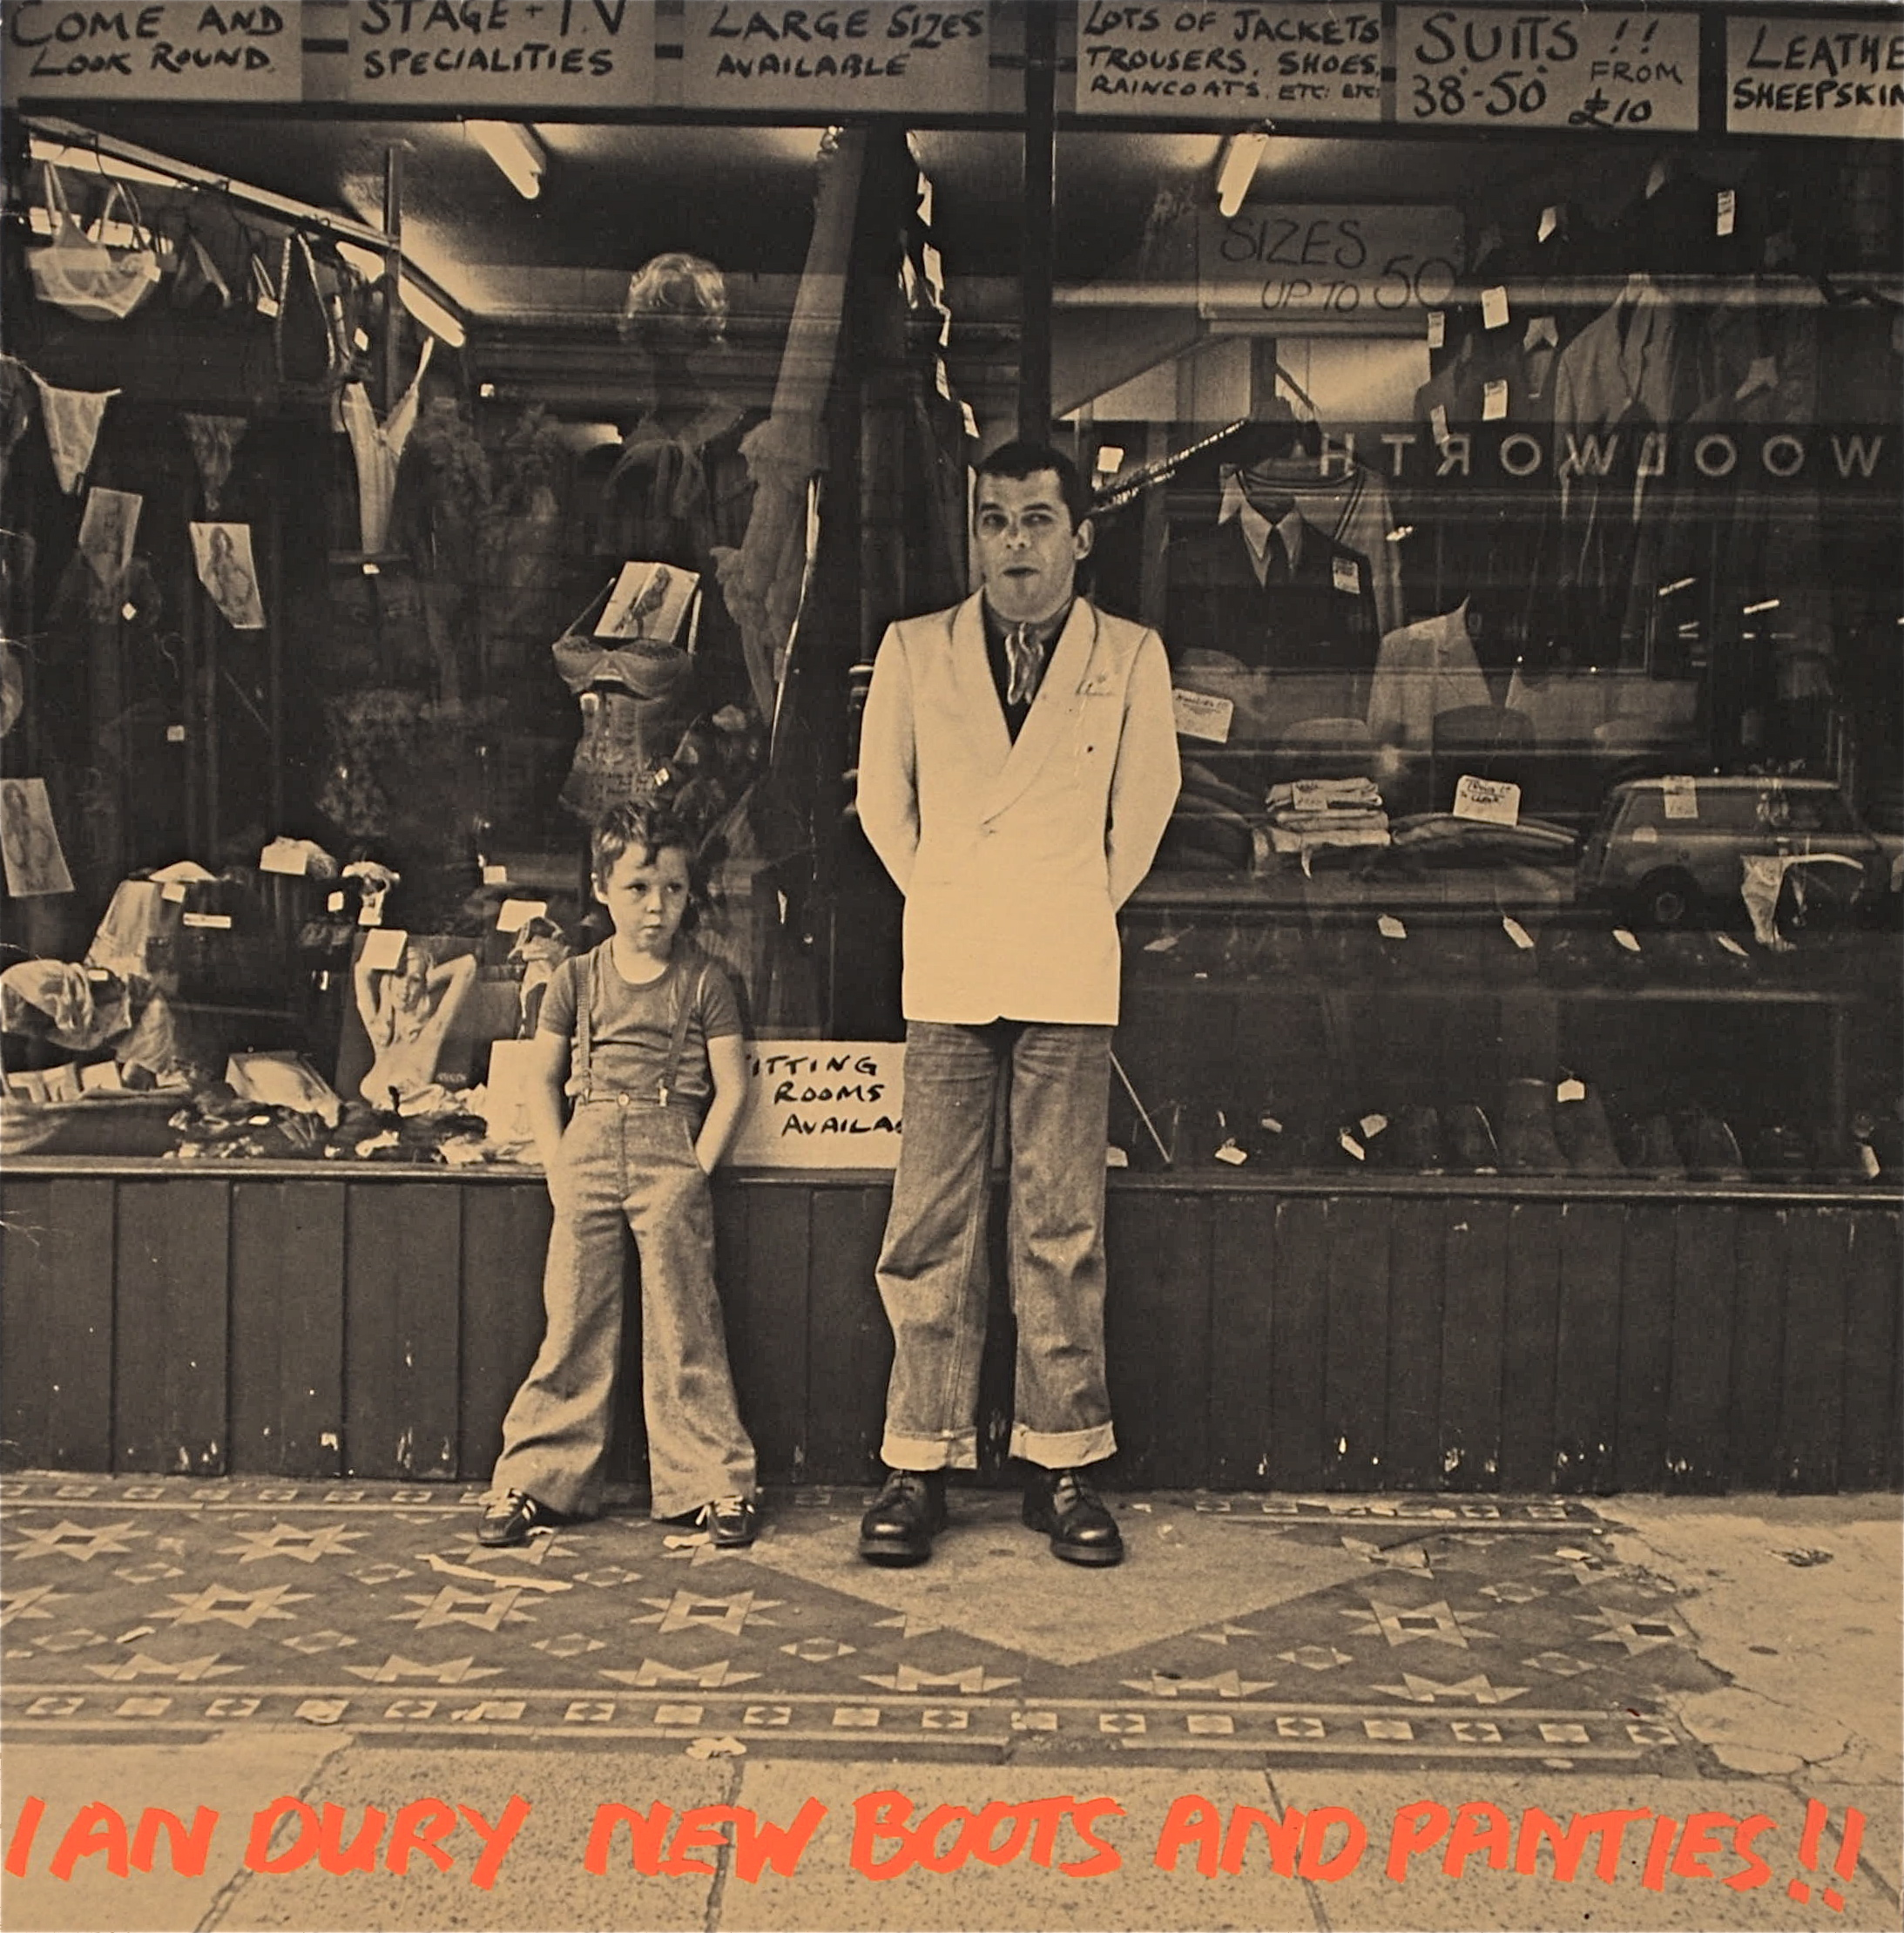 Ian Dury Wake Up And Make Love With Me Trevor Clever